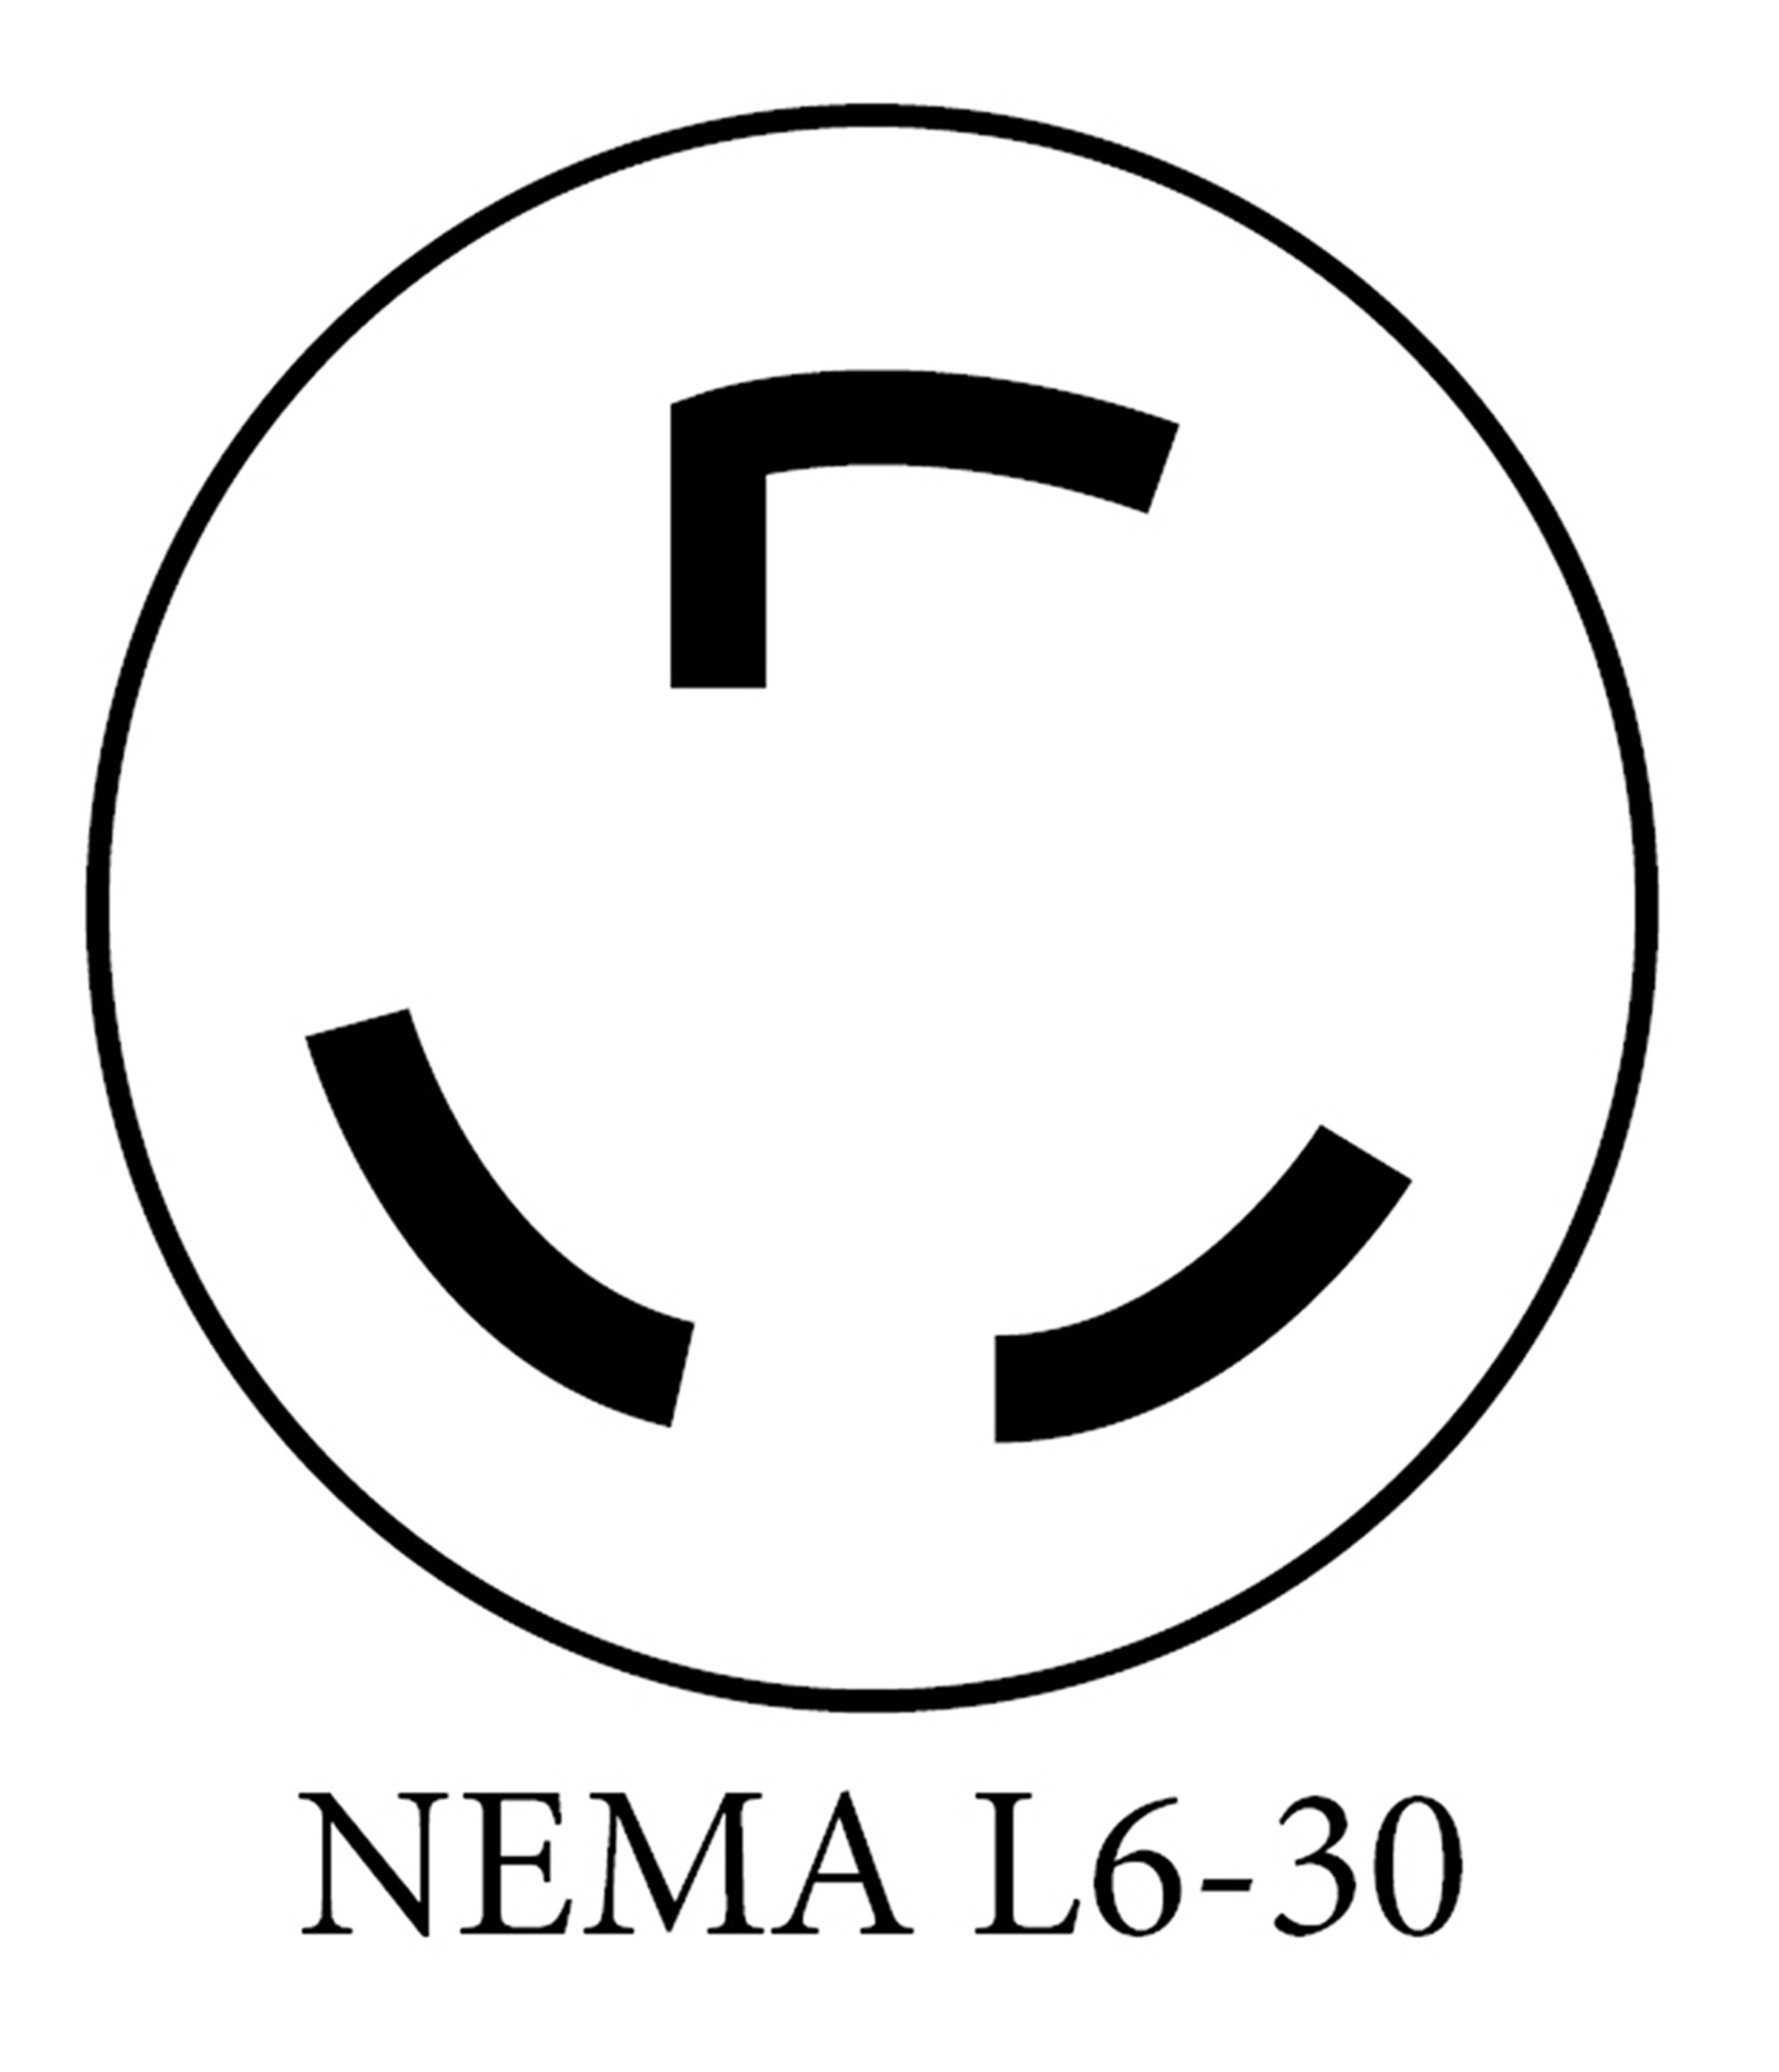 hight resolution of nema 6 50 50a plug this is common for welders or plasma cutters it s installed onto a dedicated 50a circuit to match the rating of the plug